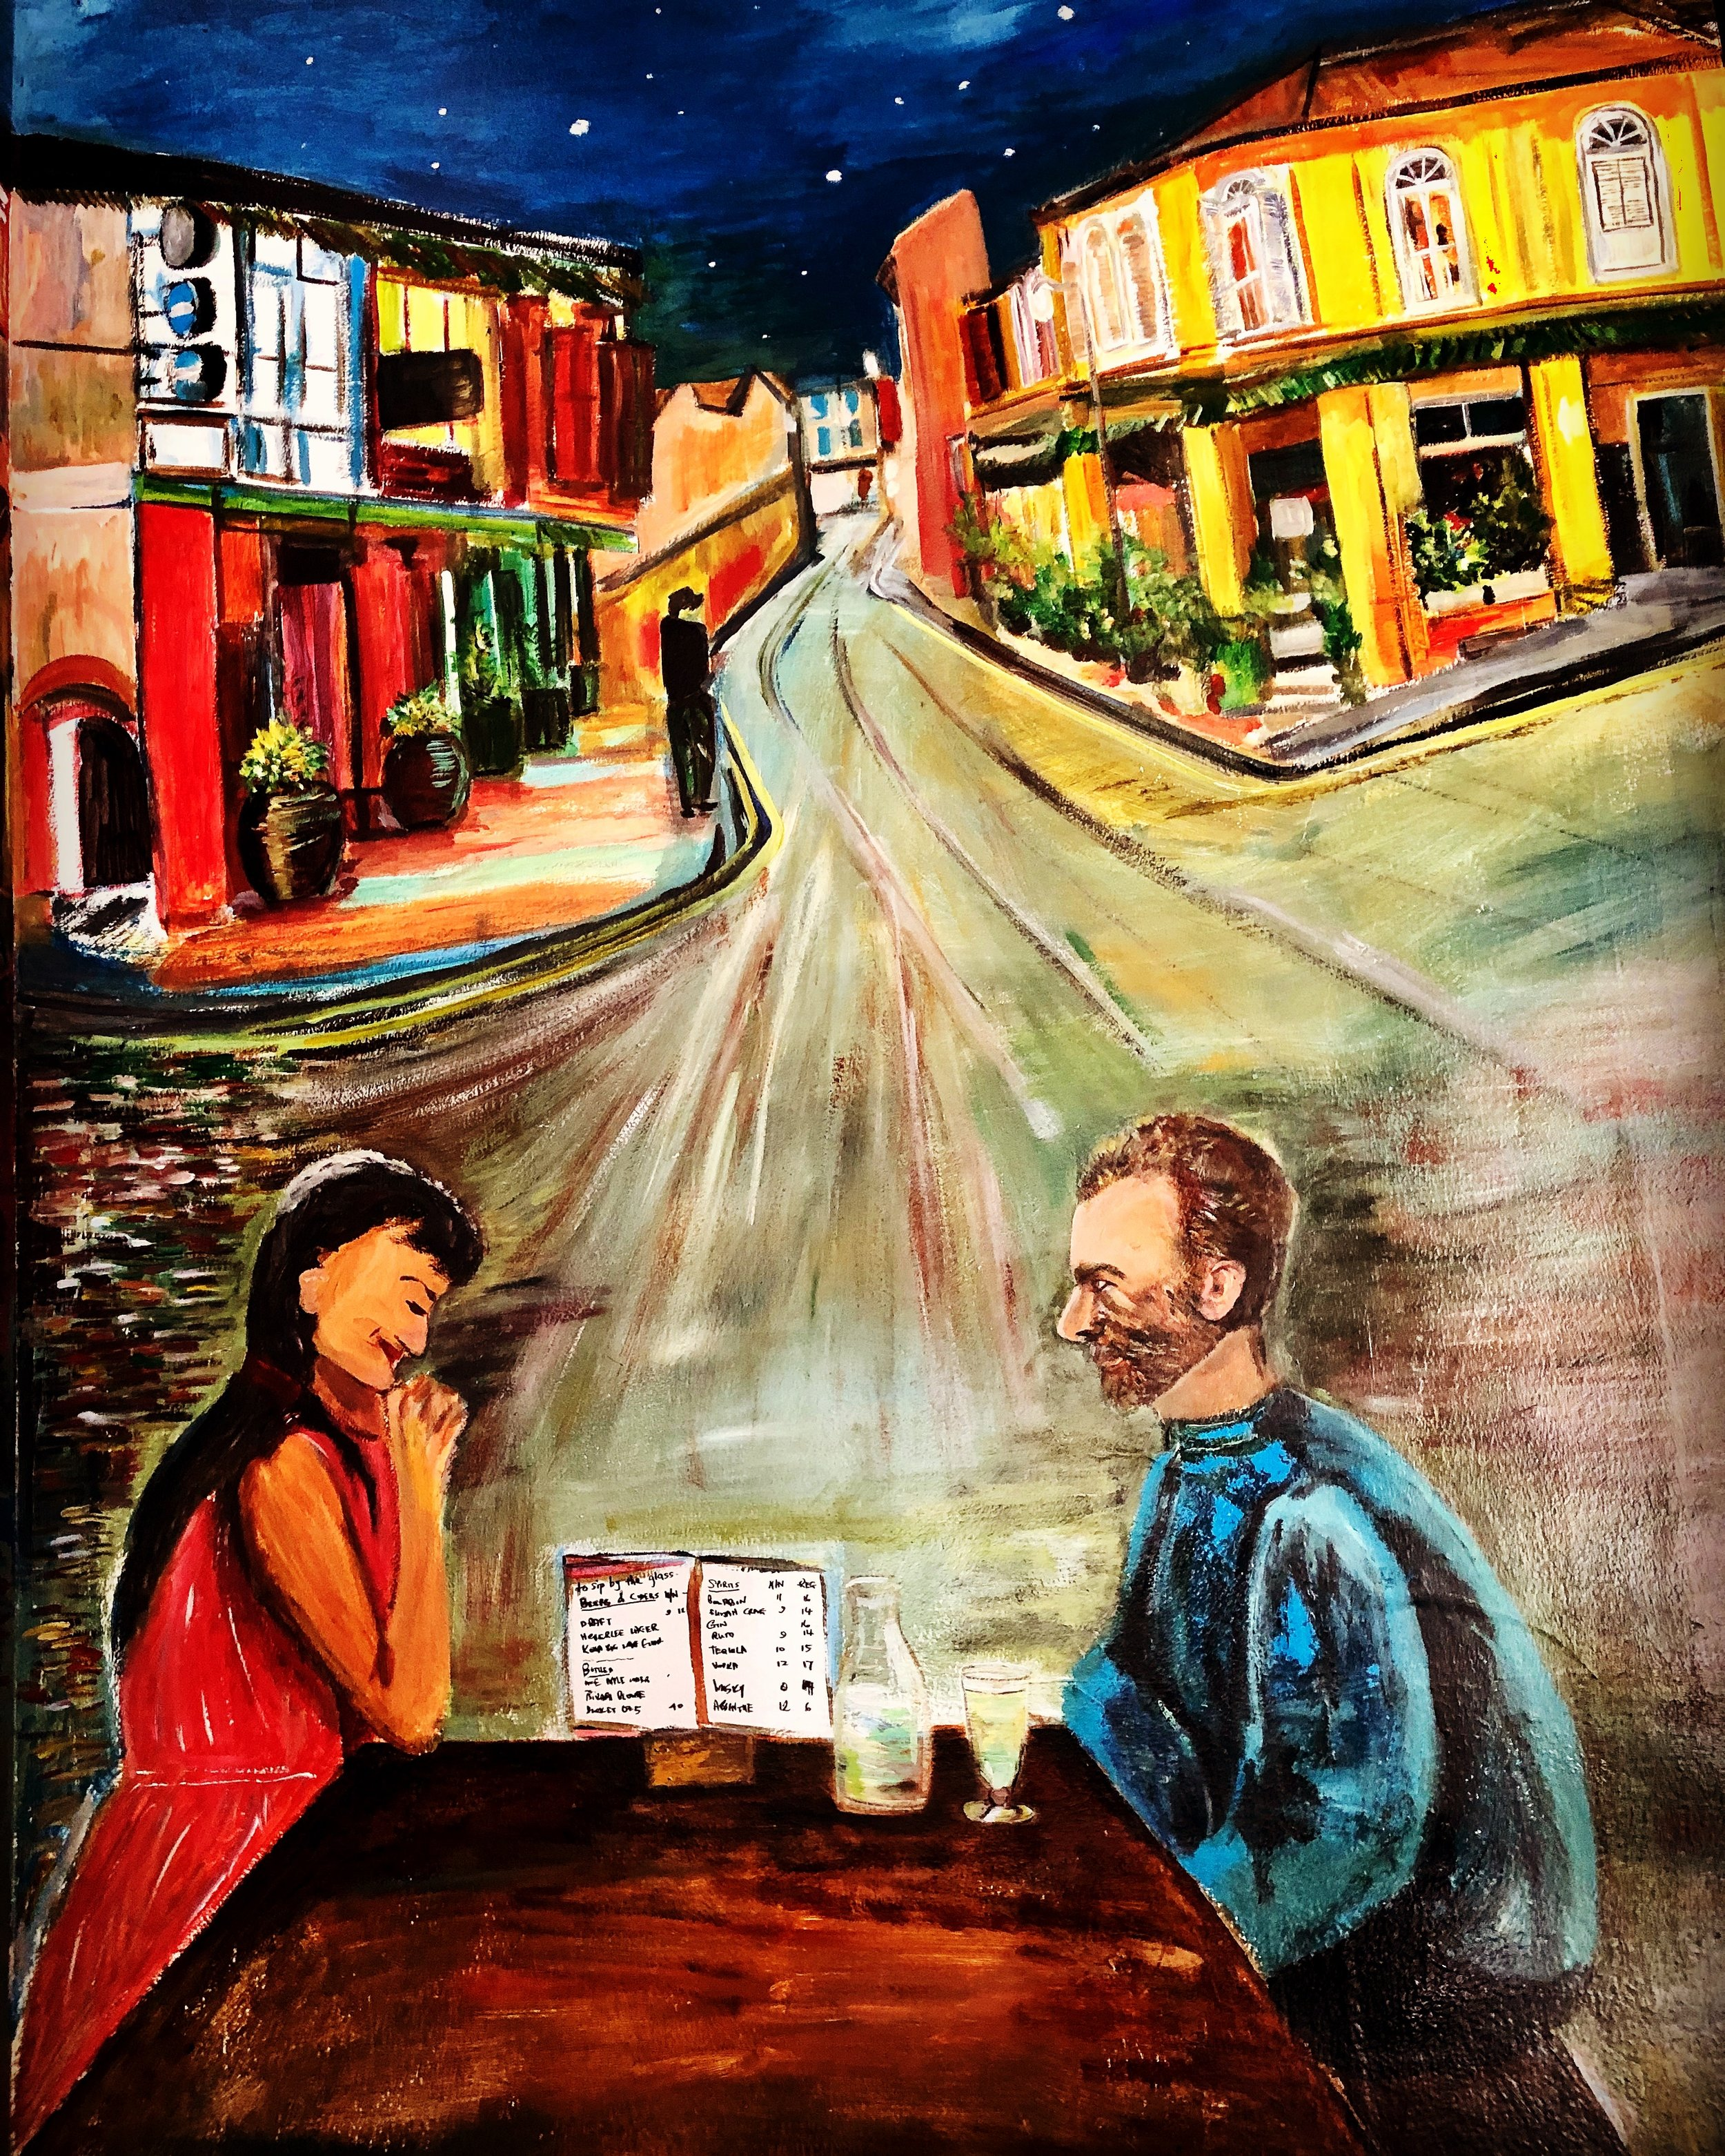 So this is at the junction of Club Street. Moving from the main road at the entrance, we see this couple by the side chatting away. Can you recognize the man? He is looking intently at this Chinese girl and is someone who didn't have any luck at all with women! so maybe a Chinese girl might be more suitable for him…:-) I wanted to paint happy images and pictures that bring hope for either the viewer or the people drawn based on their background. The stars were